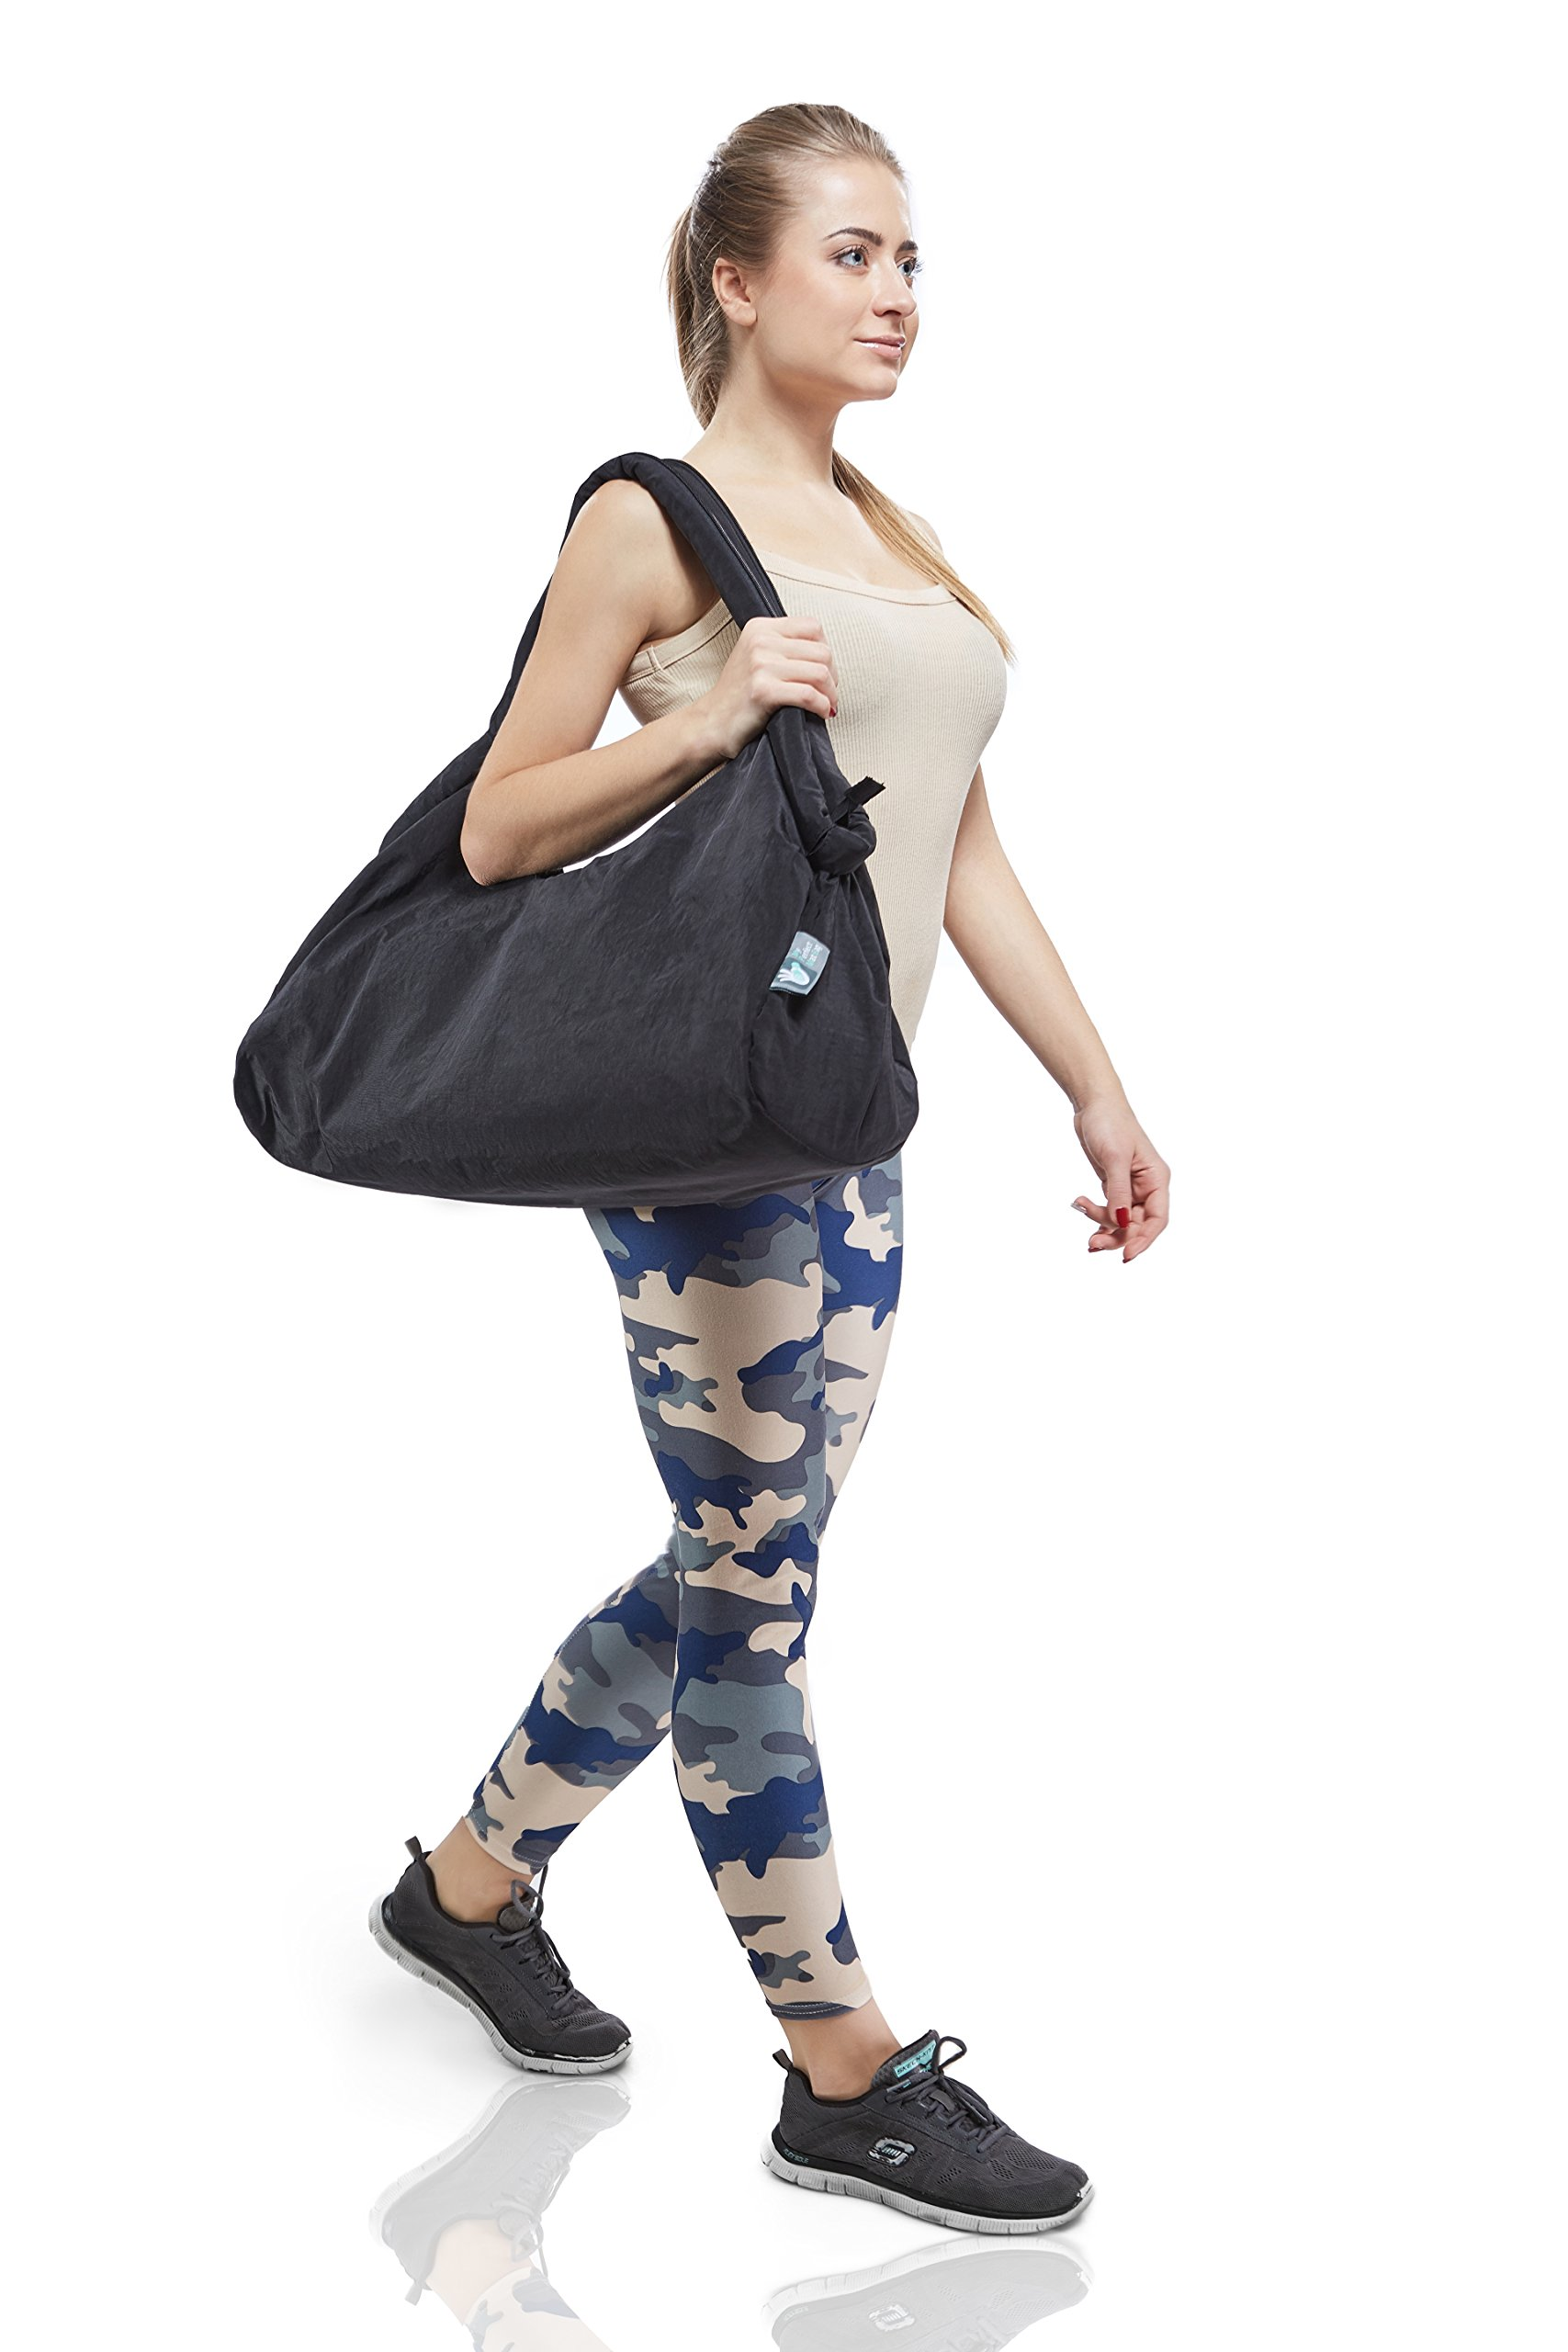 Duffle Bag Women for Gym, Travel and Yoga studio 3 IN ONE black by My Perfect Mat Bag